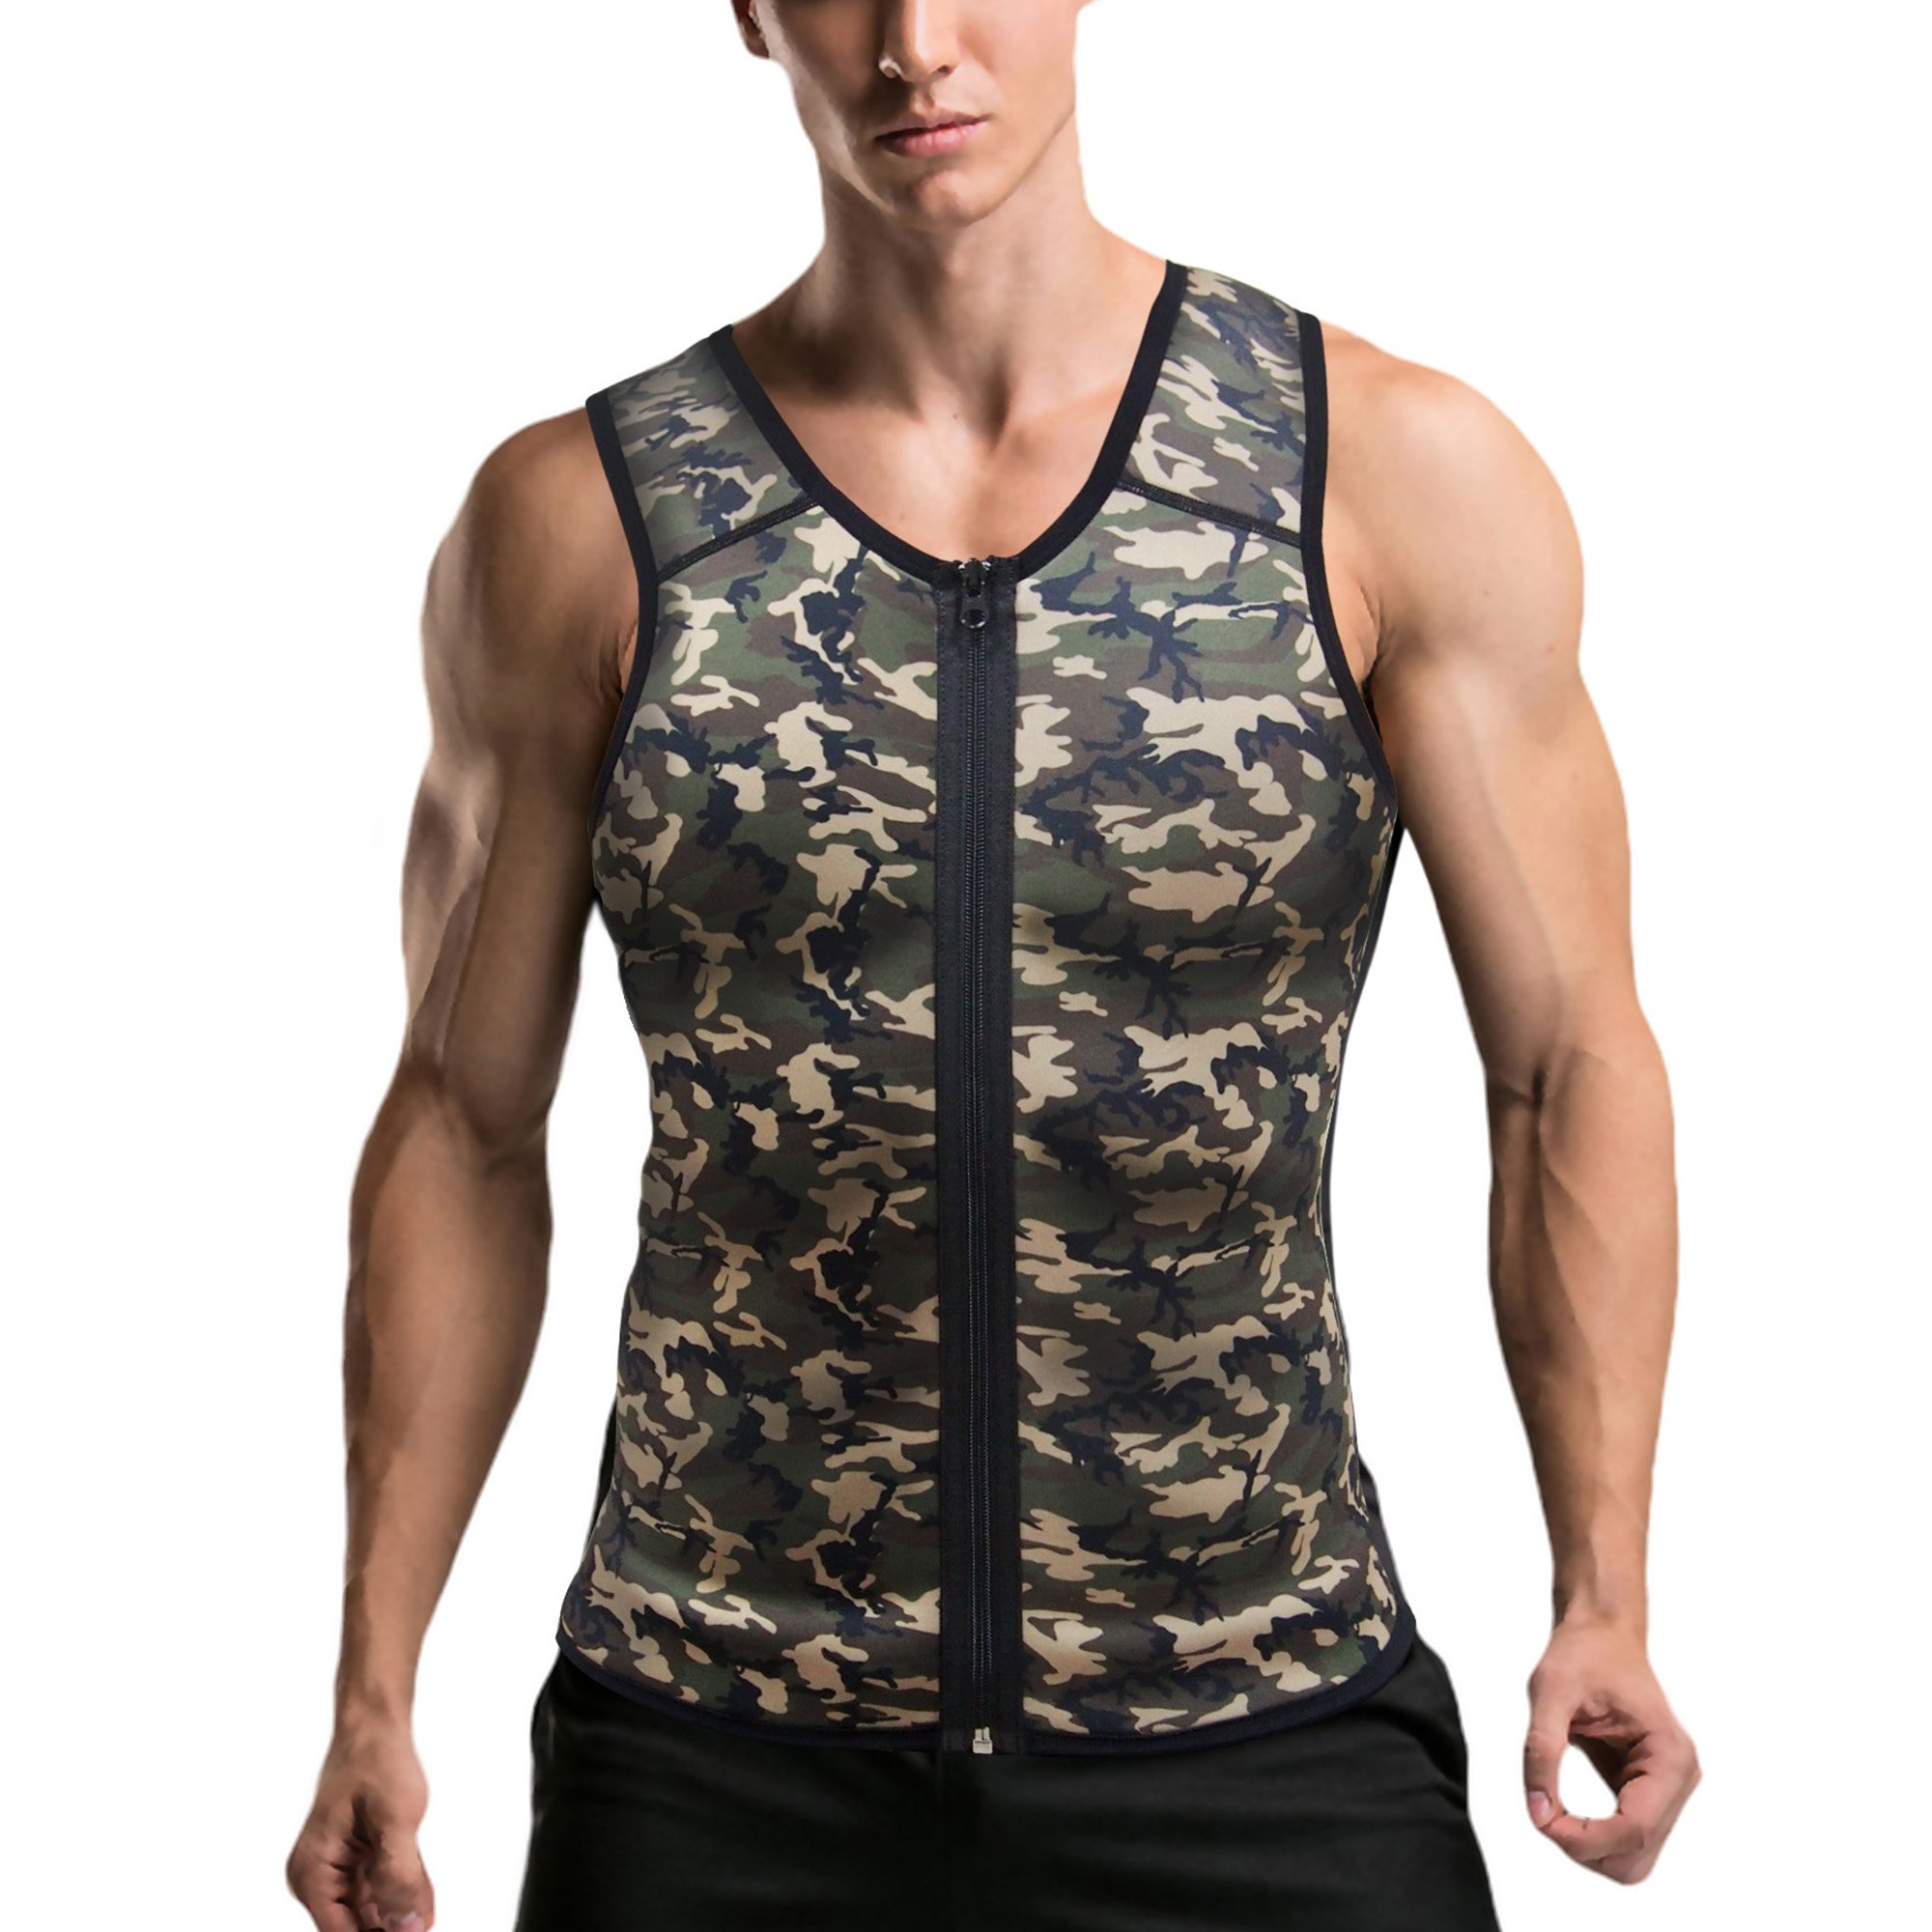 Mpeter Men Waist Trainer, Slimming Body Shaper Sweat Vest, Sauna Suit Tank Top Shirt for Weight Loss (Camouflage, S)